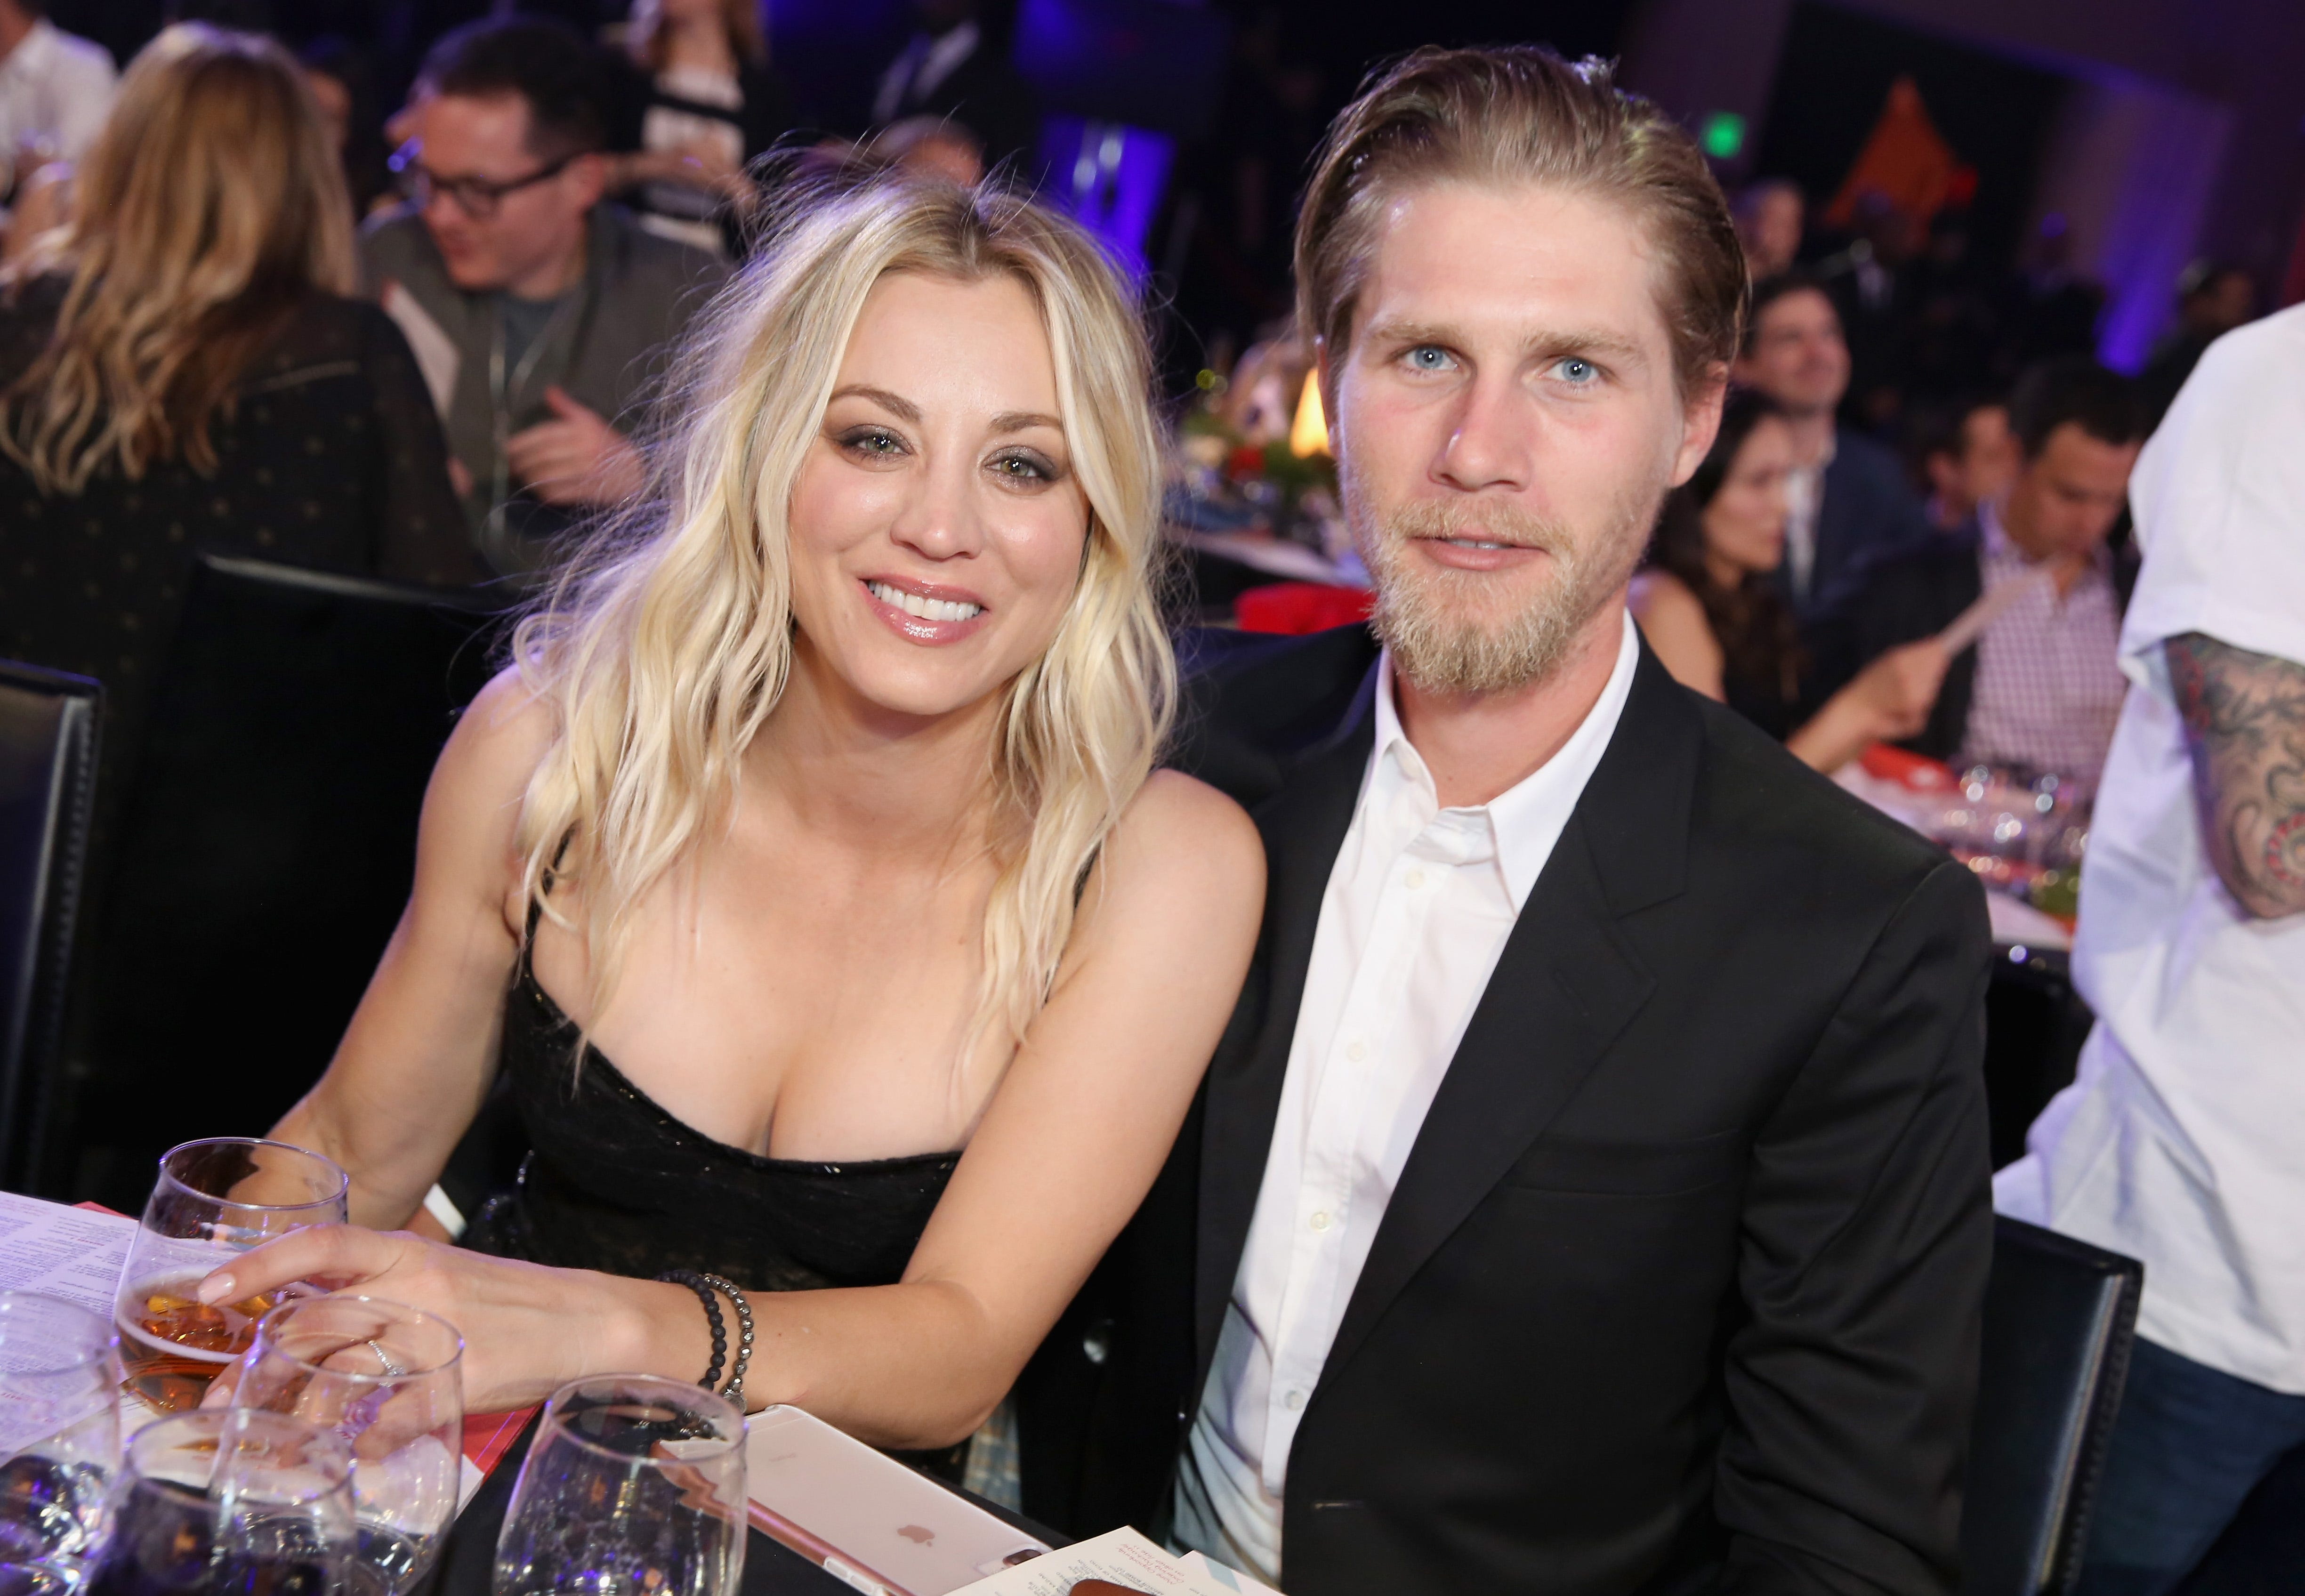 'Big Bang Theory' star Kaley Cuoco marries Karl Cook in lace: 'Legally KCSQUARED'